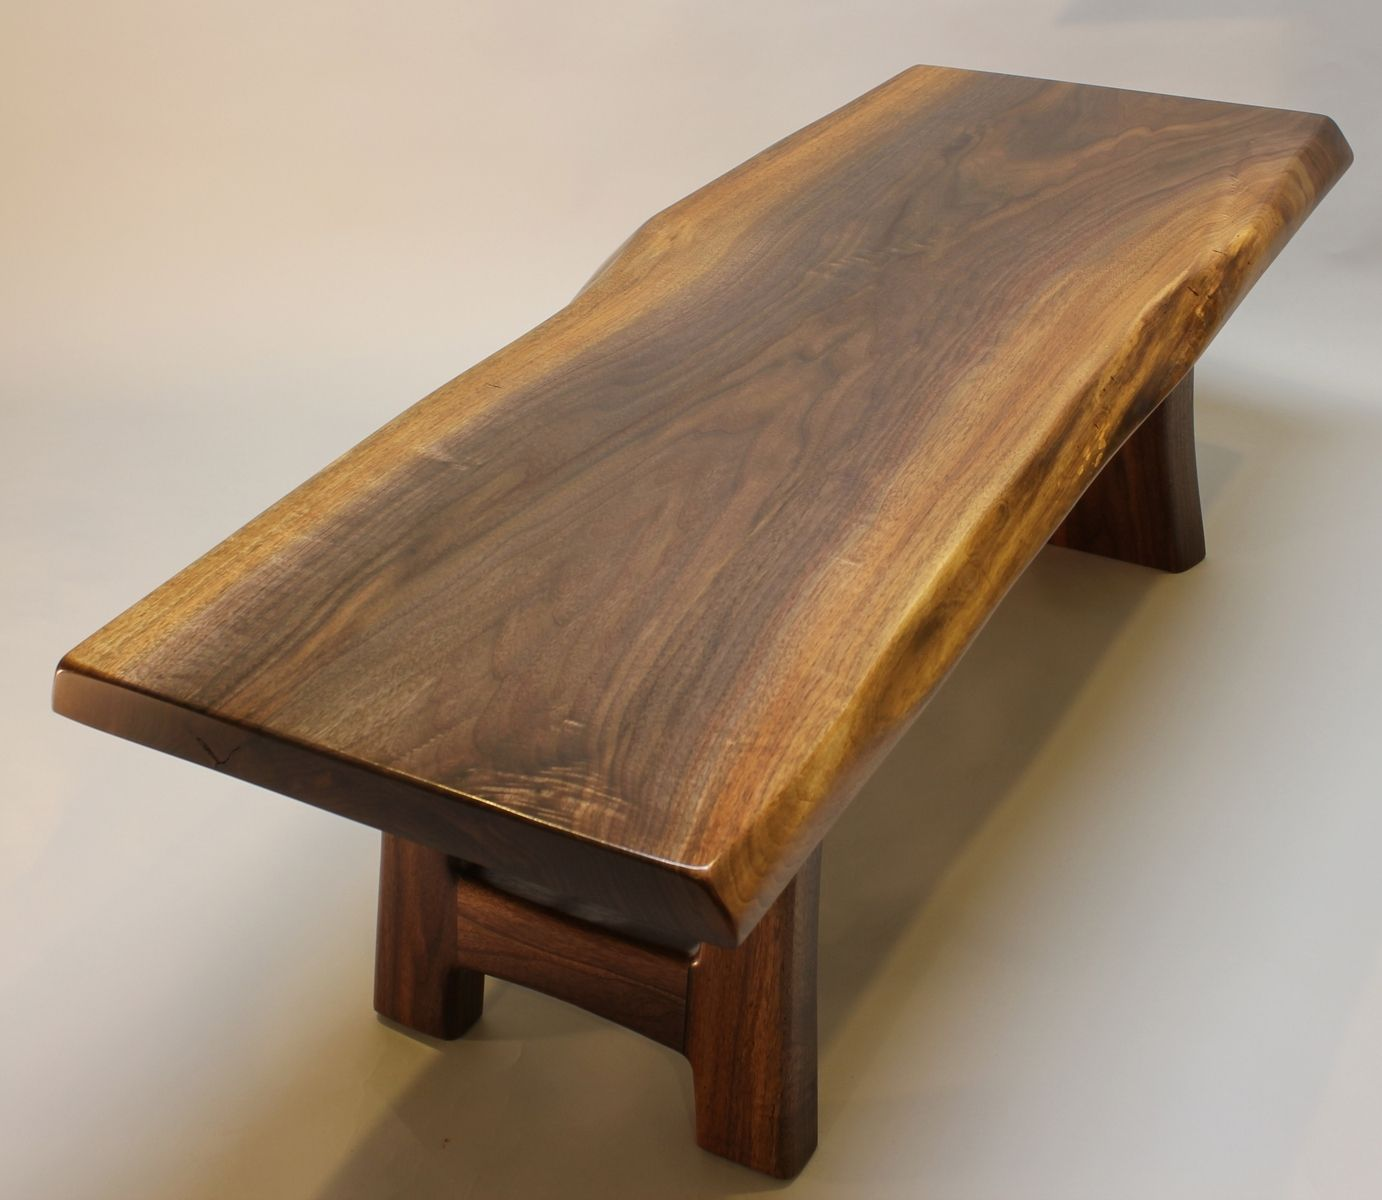 Handmade Black Walnut Live Edge Coffee Table By J R Signature